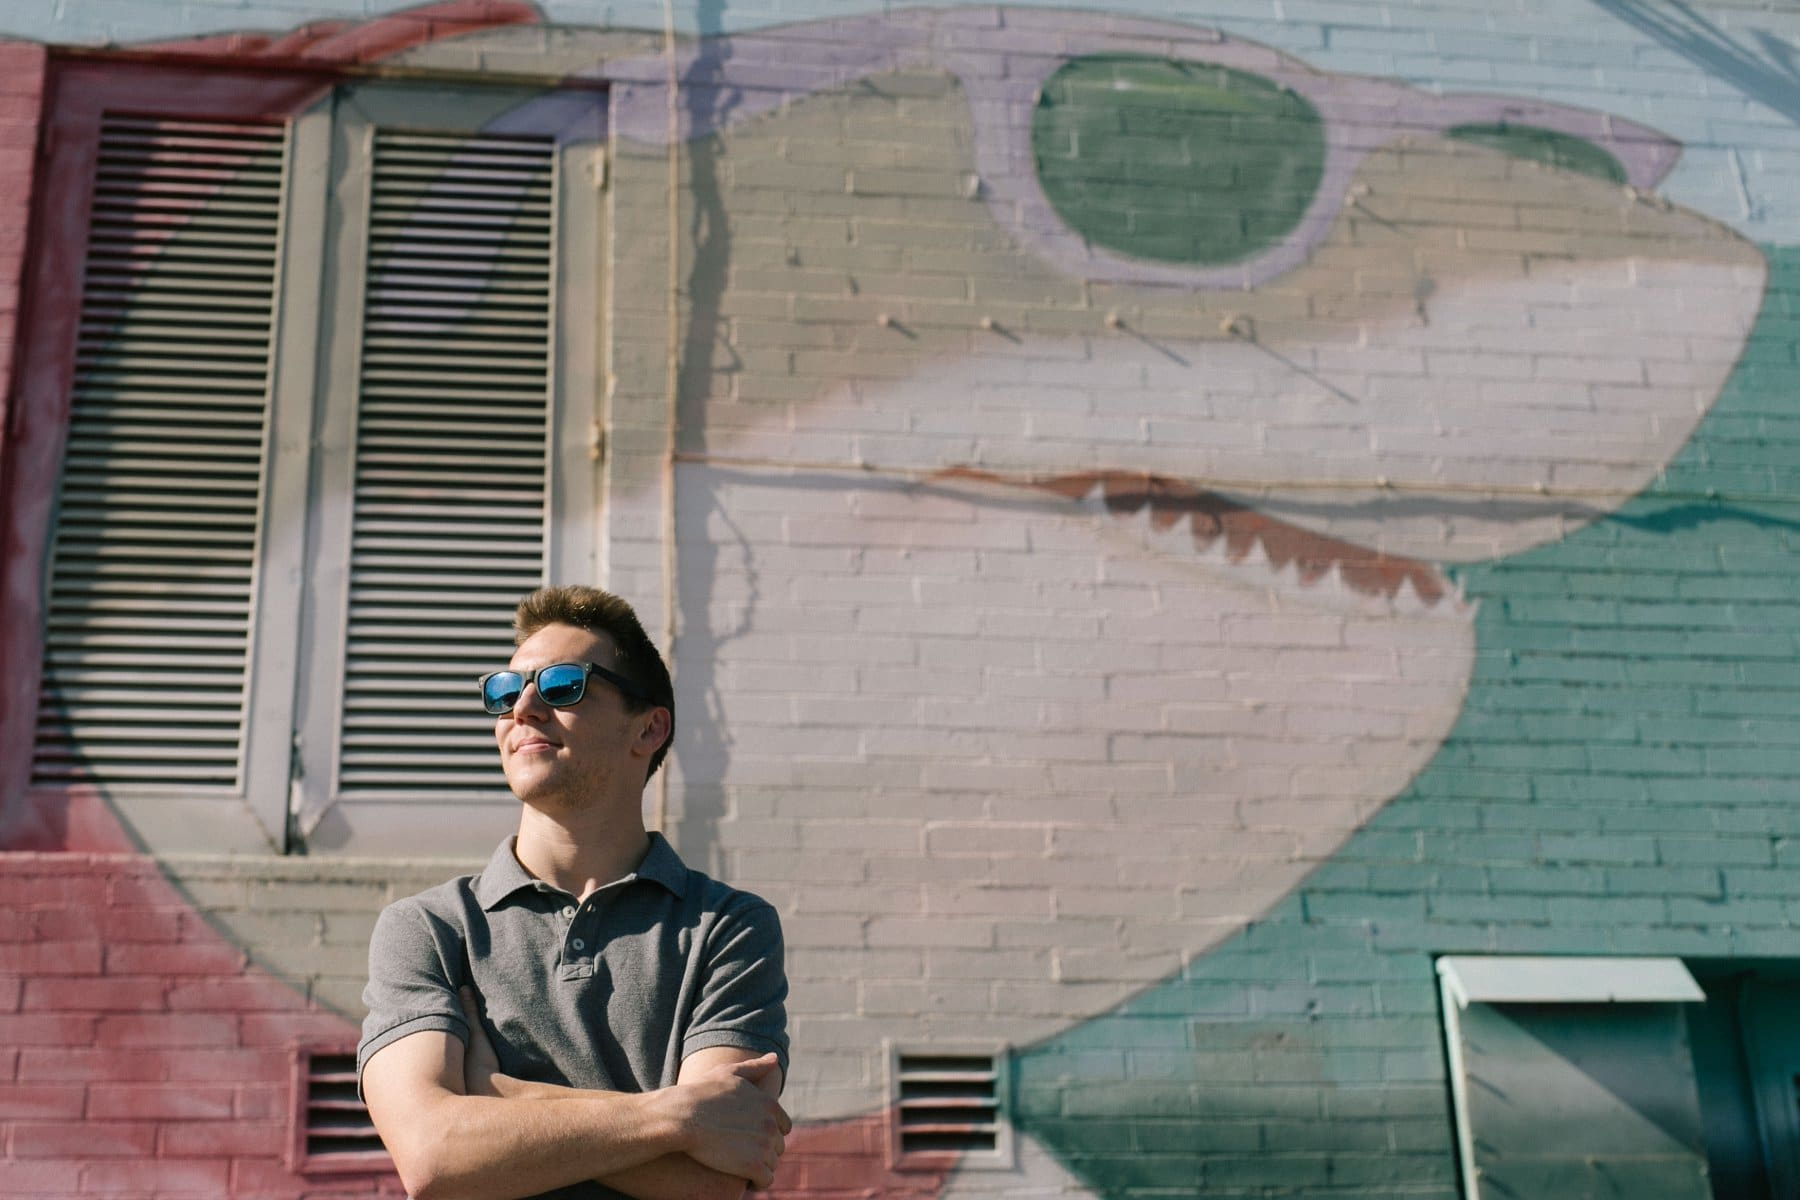 college senior graduate casual photos with sunglasses & a shark mural cool college senior guy photos